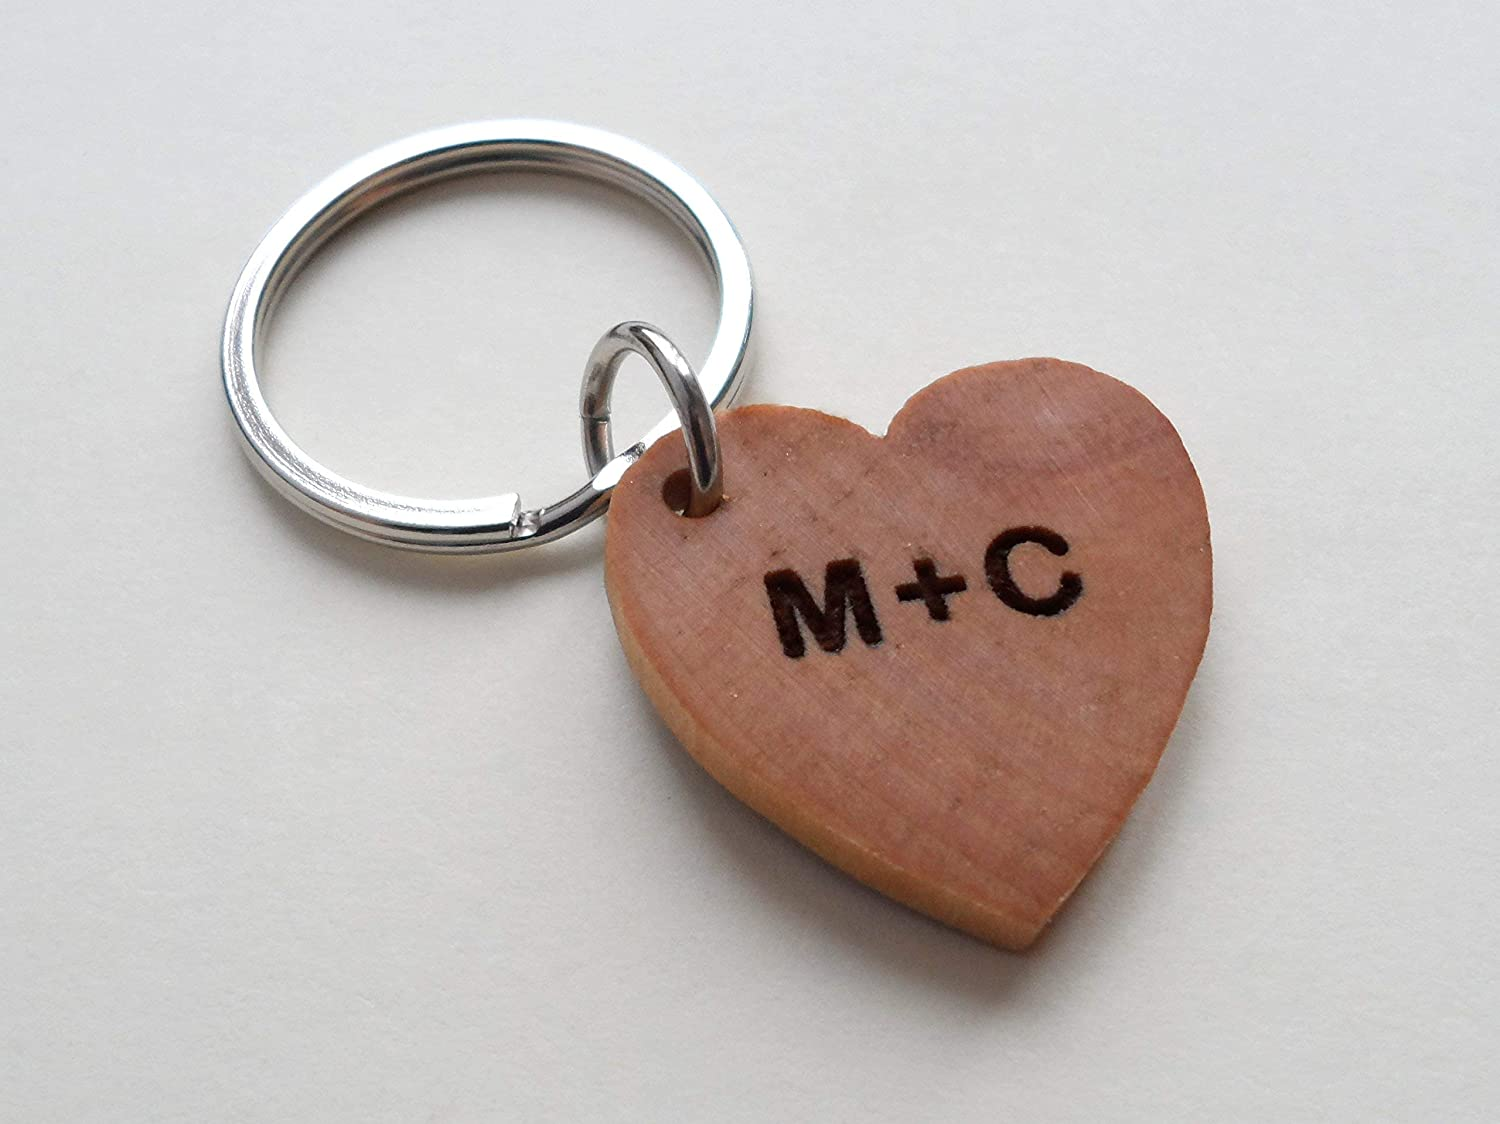 Heart Wooden Key chain gift for him gift idea Personalized key chain